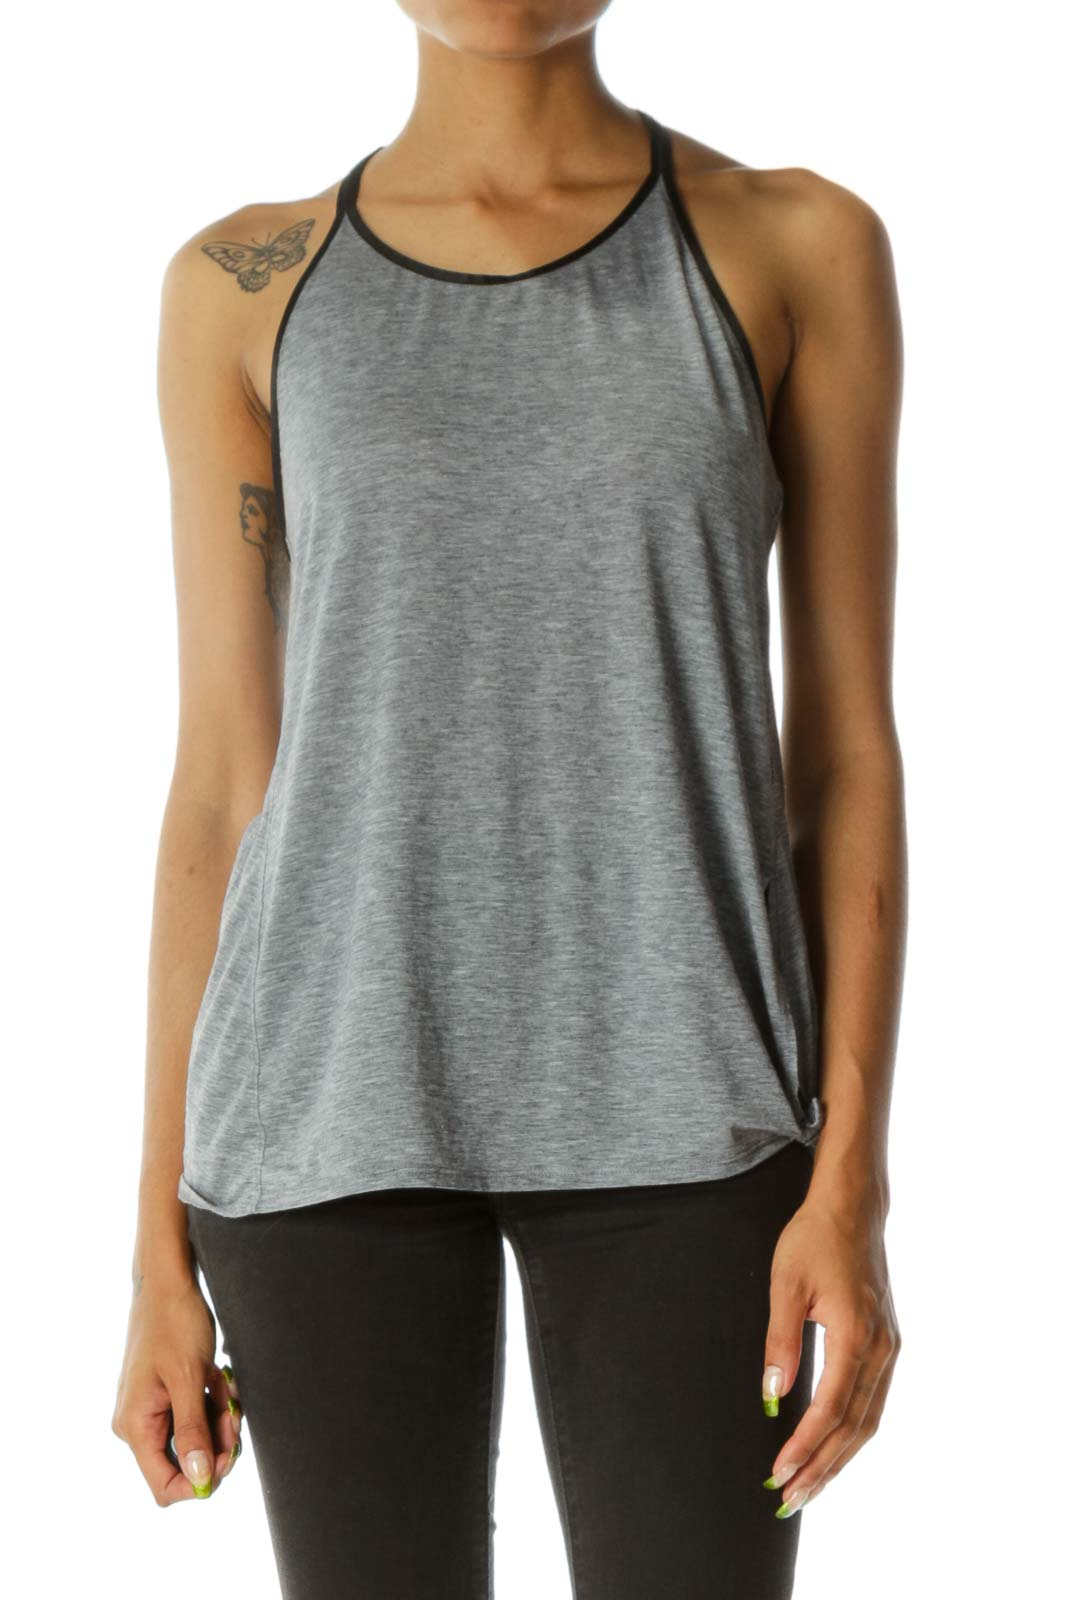 Gray Black Trim Round Neck Jersey-Knit Stretch Hip Knot Detail Active Top